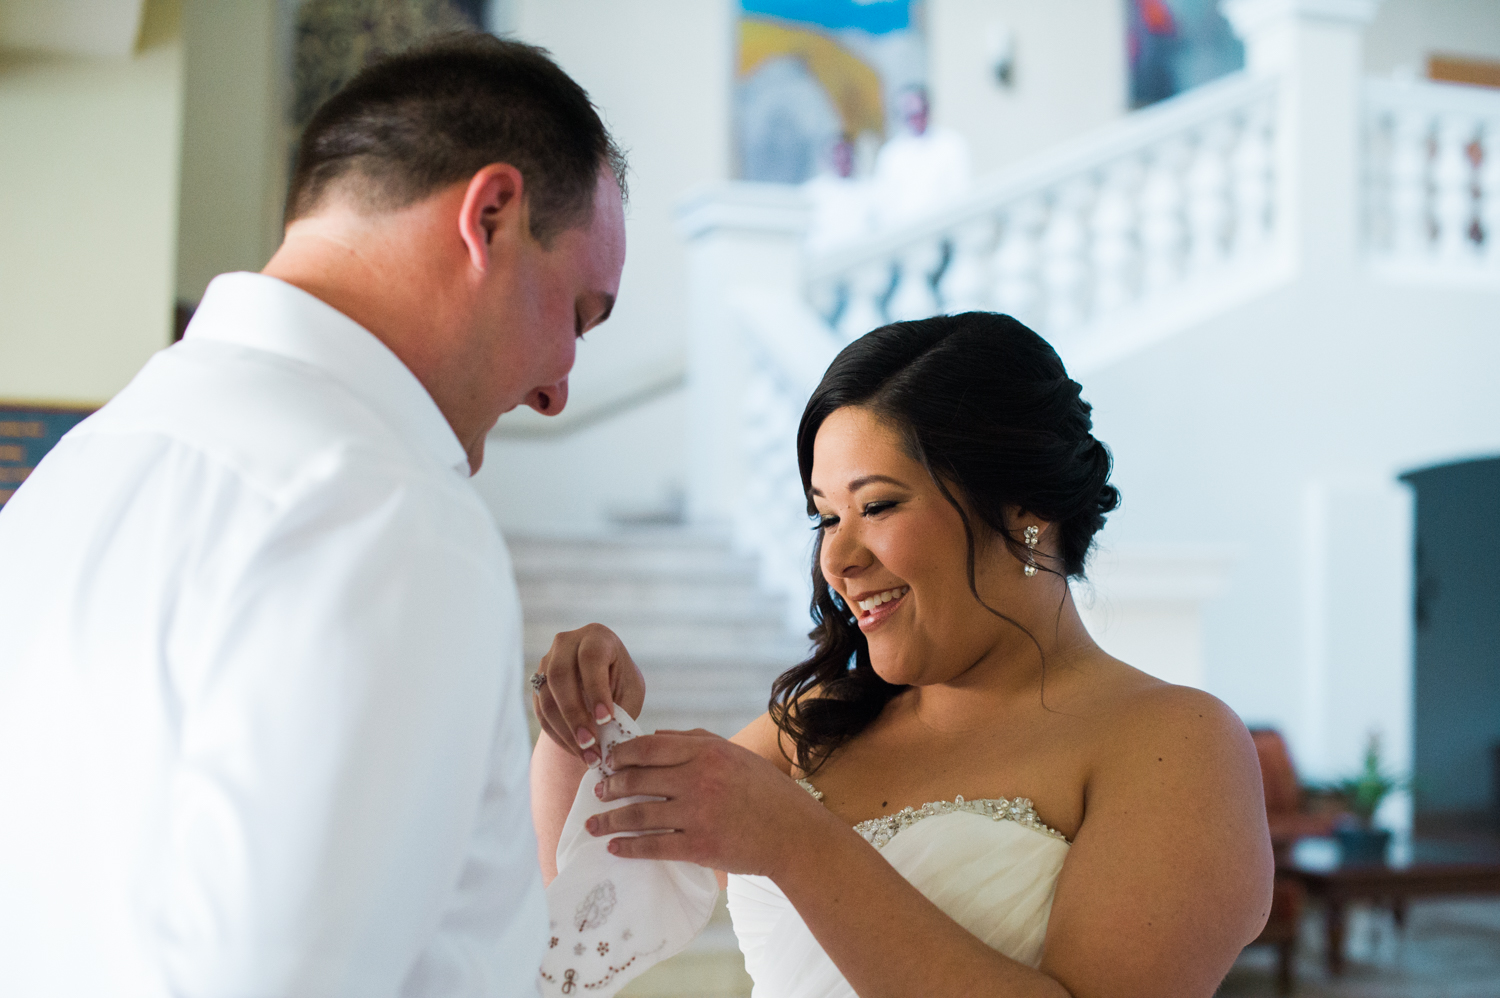 JadeandRyan-Montego-Bay-Jamaica-Wedding-Iberostar-Resort-Beach-34.jpg